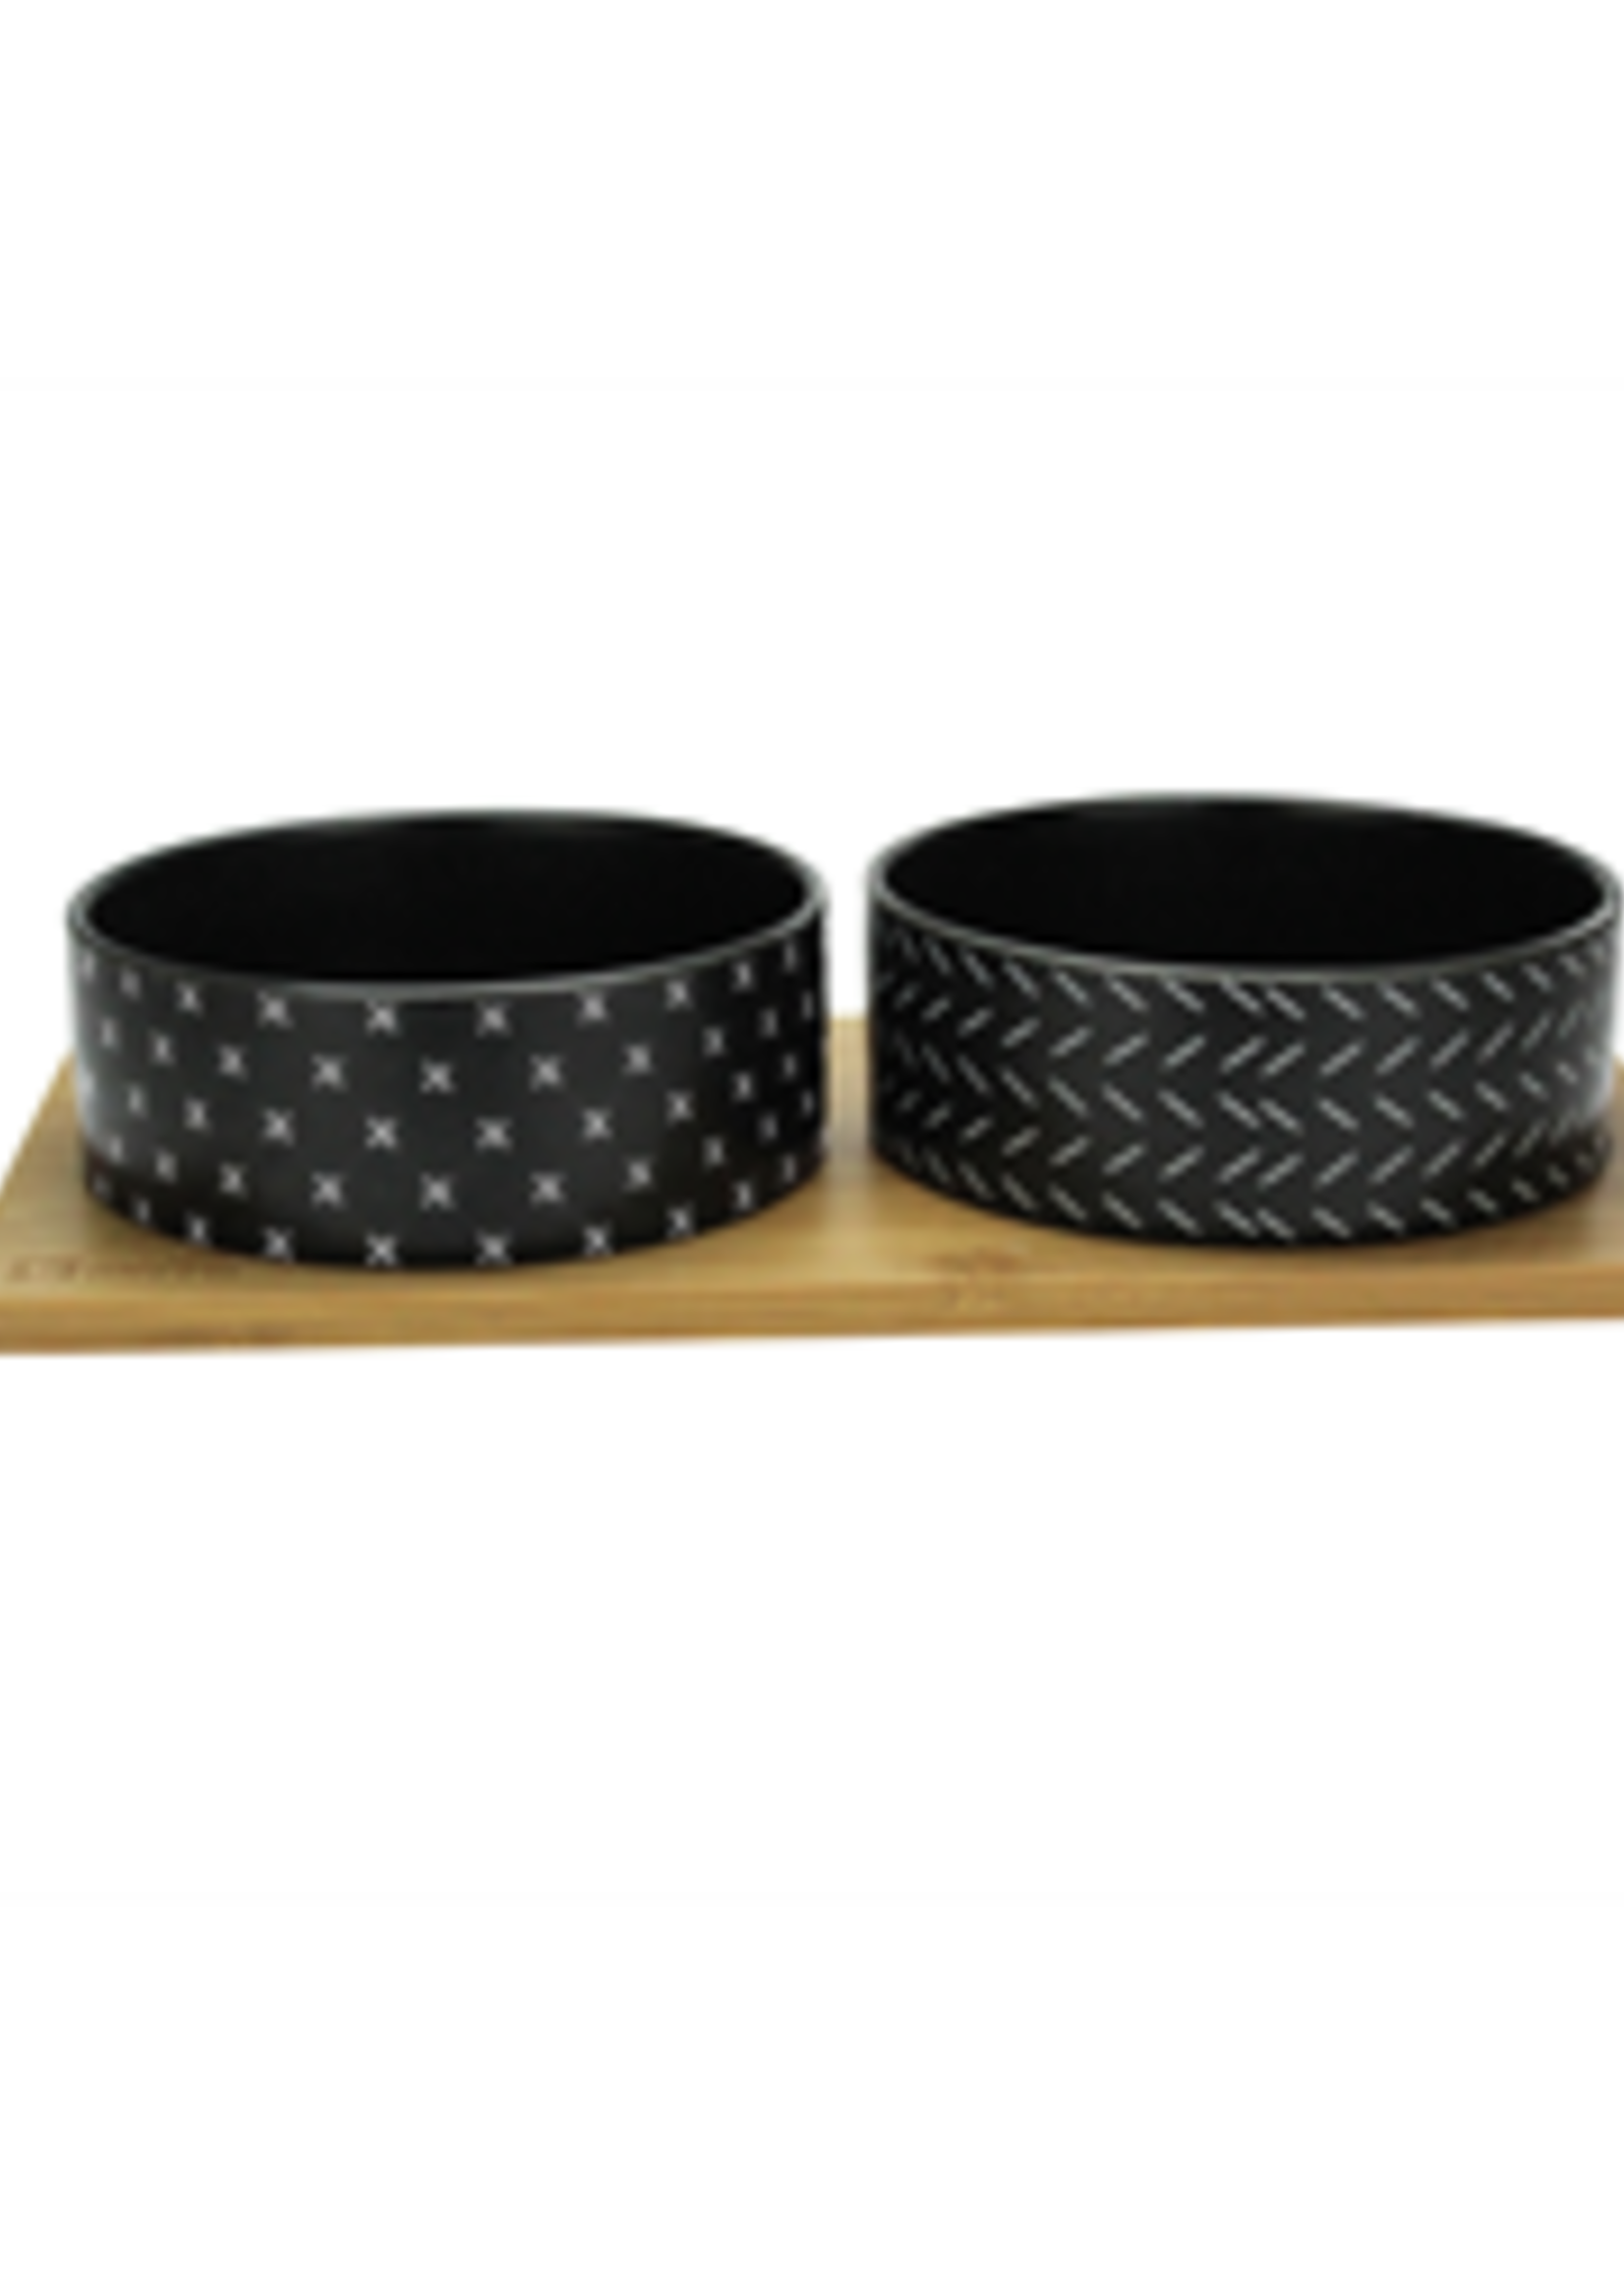 BeOneBreed™ BeOneBreed Bamboo Bowl Set Large